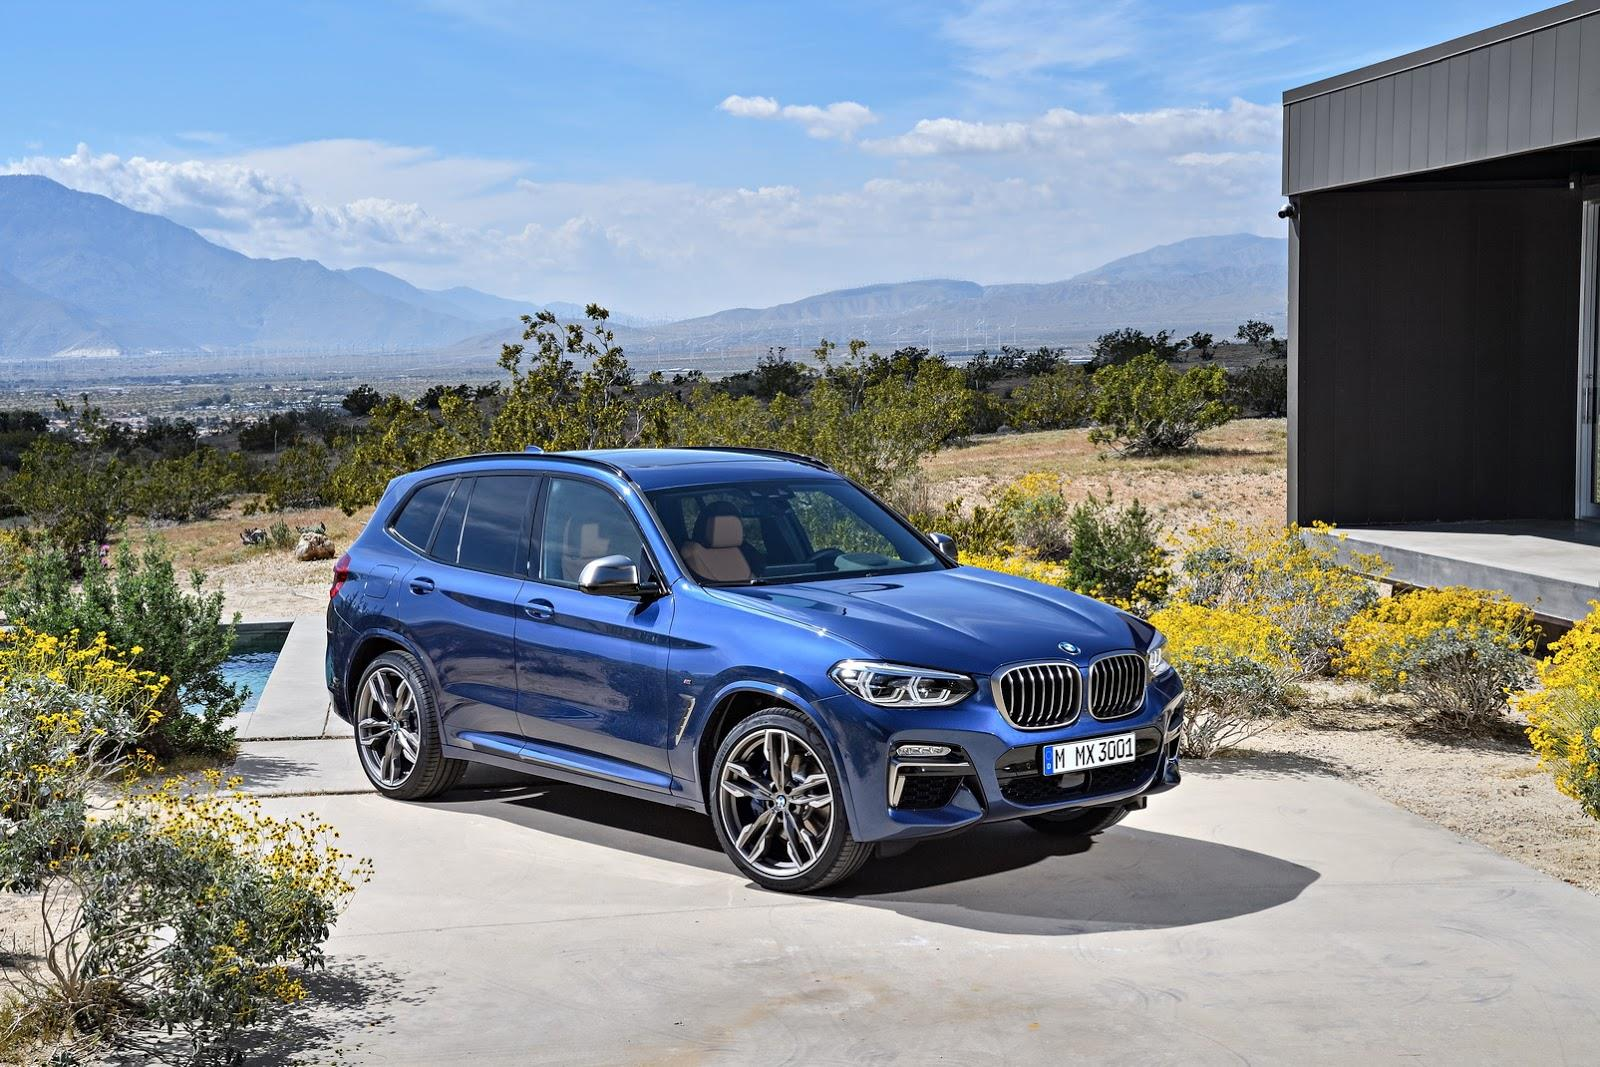 2018 BMW X3 image gallery